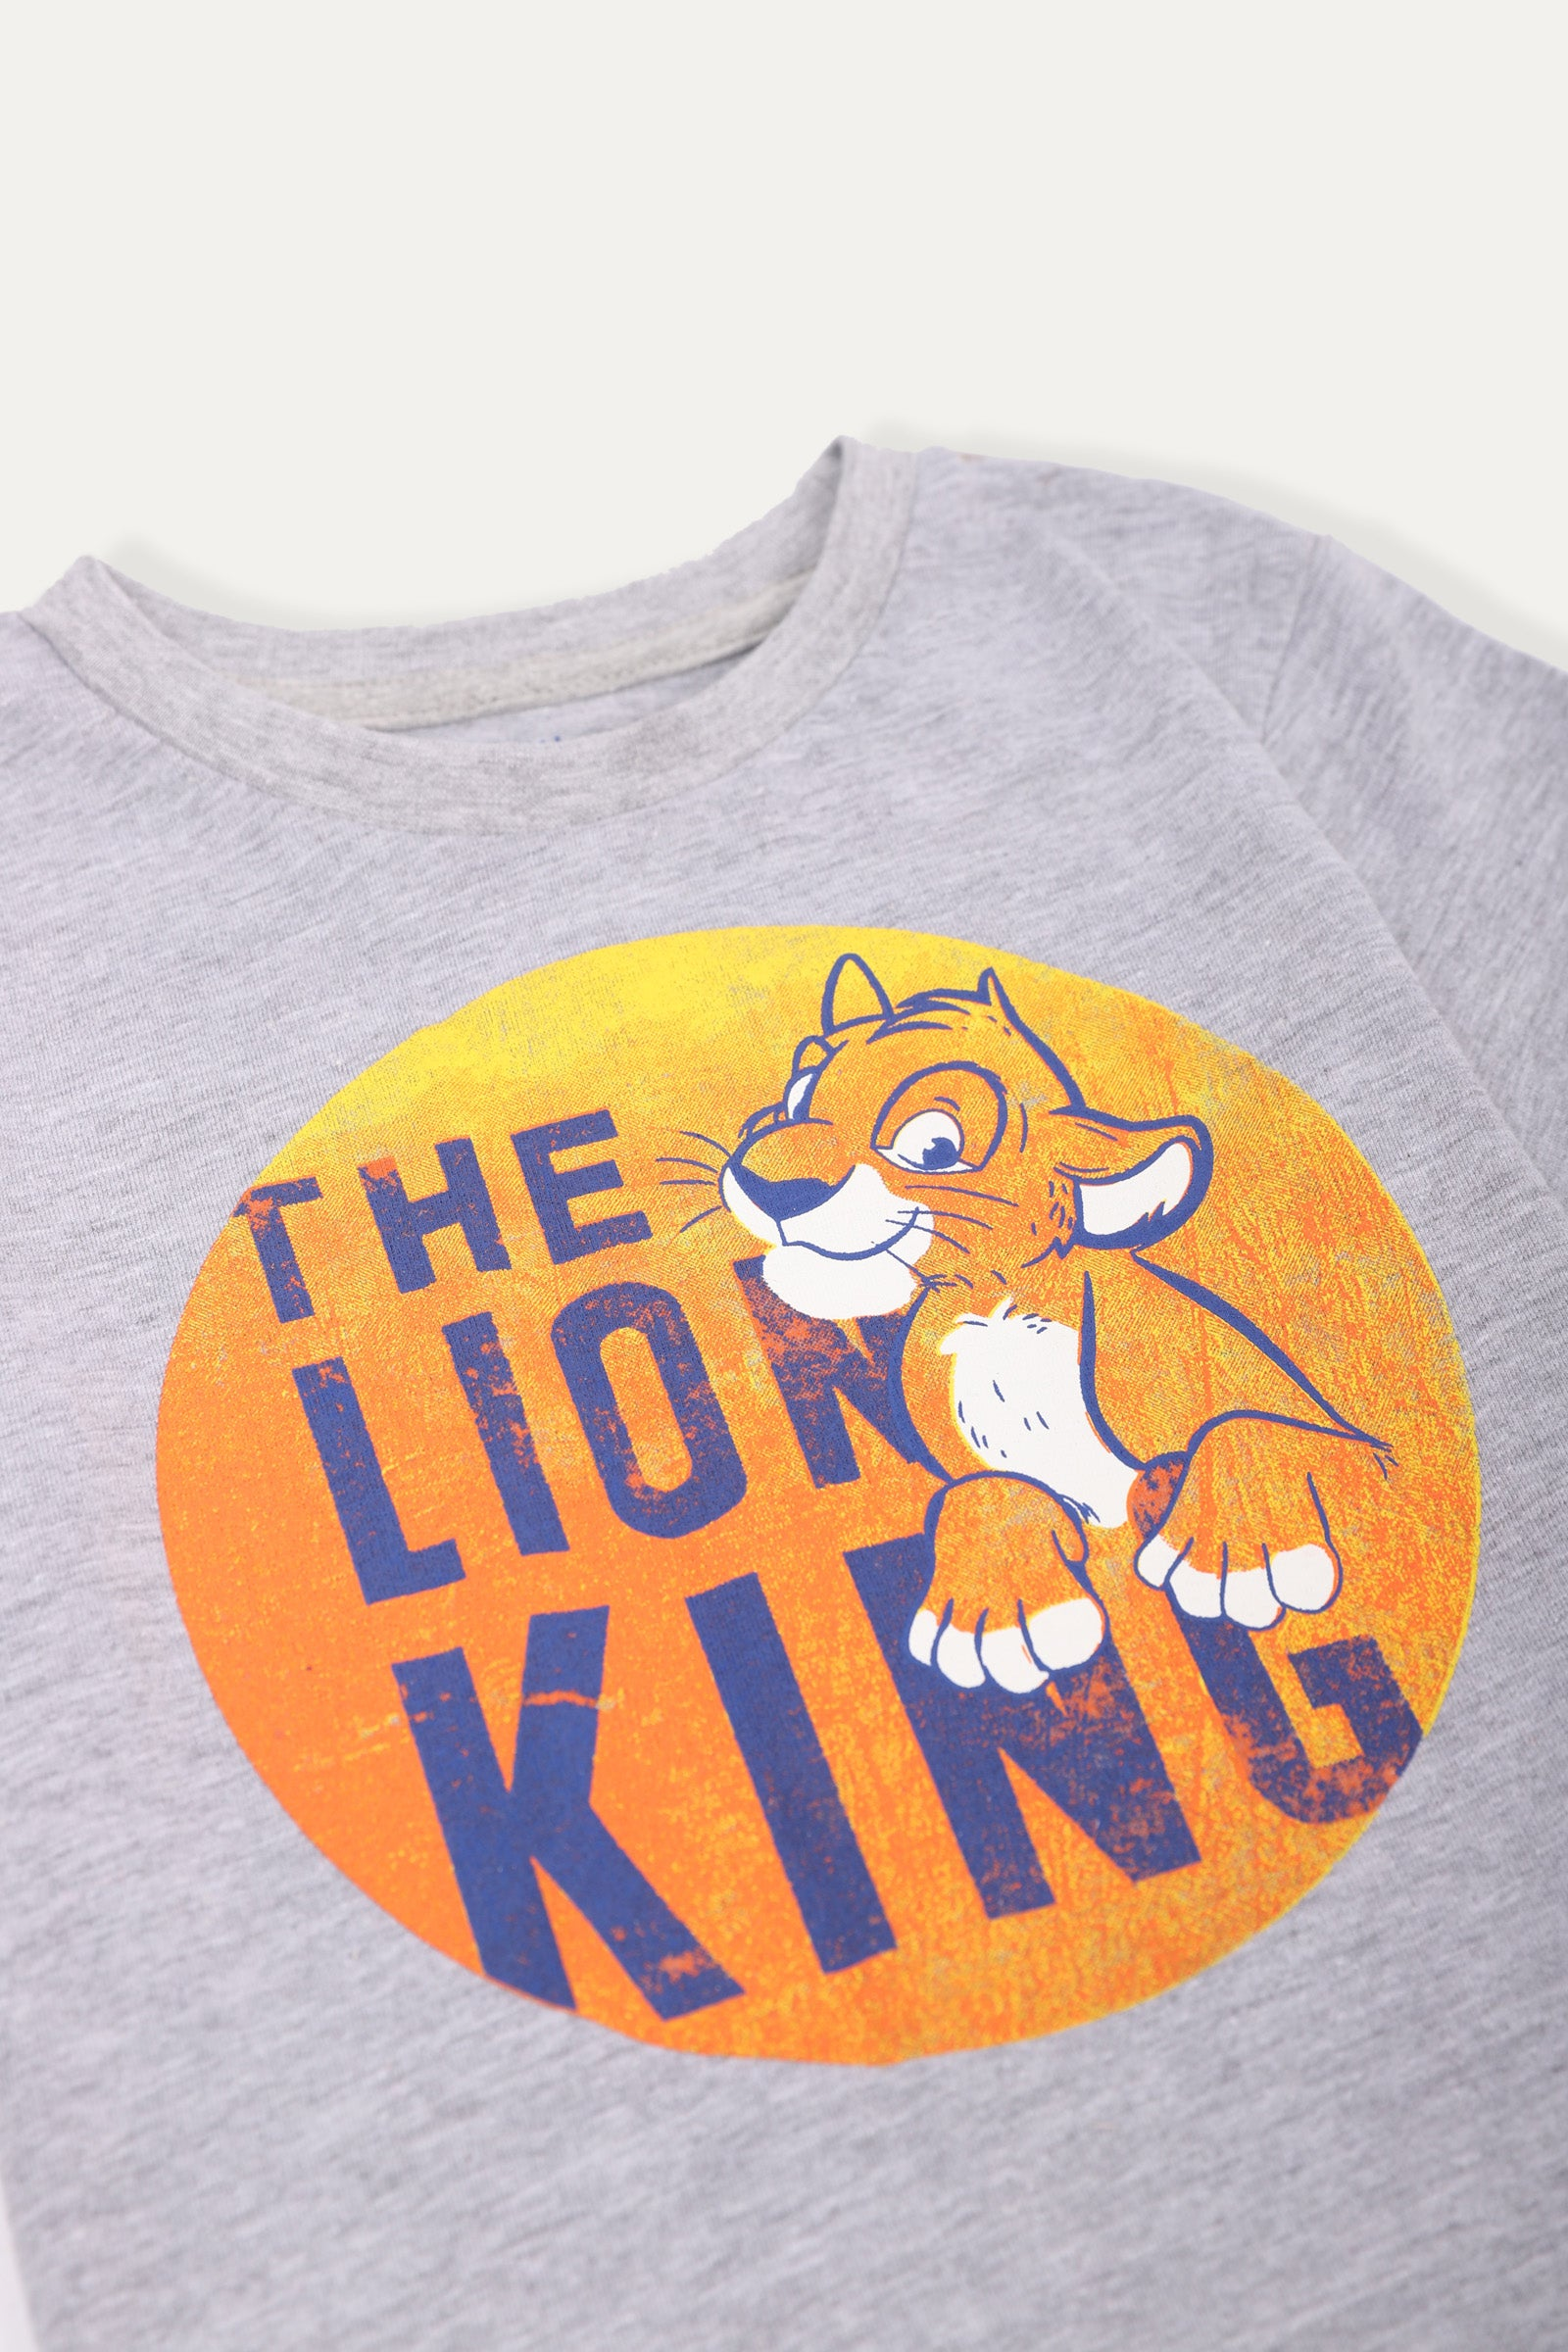 The Lion King' T-shirt